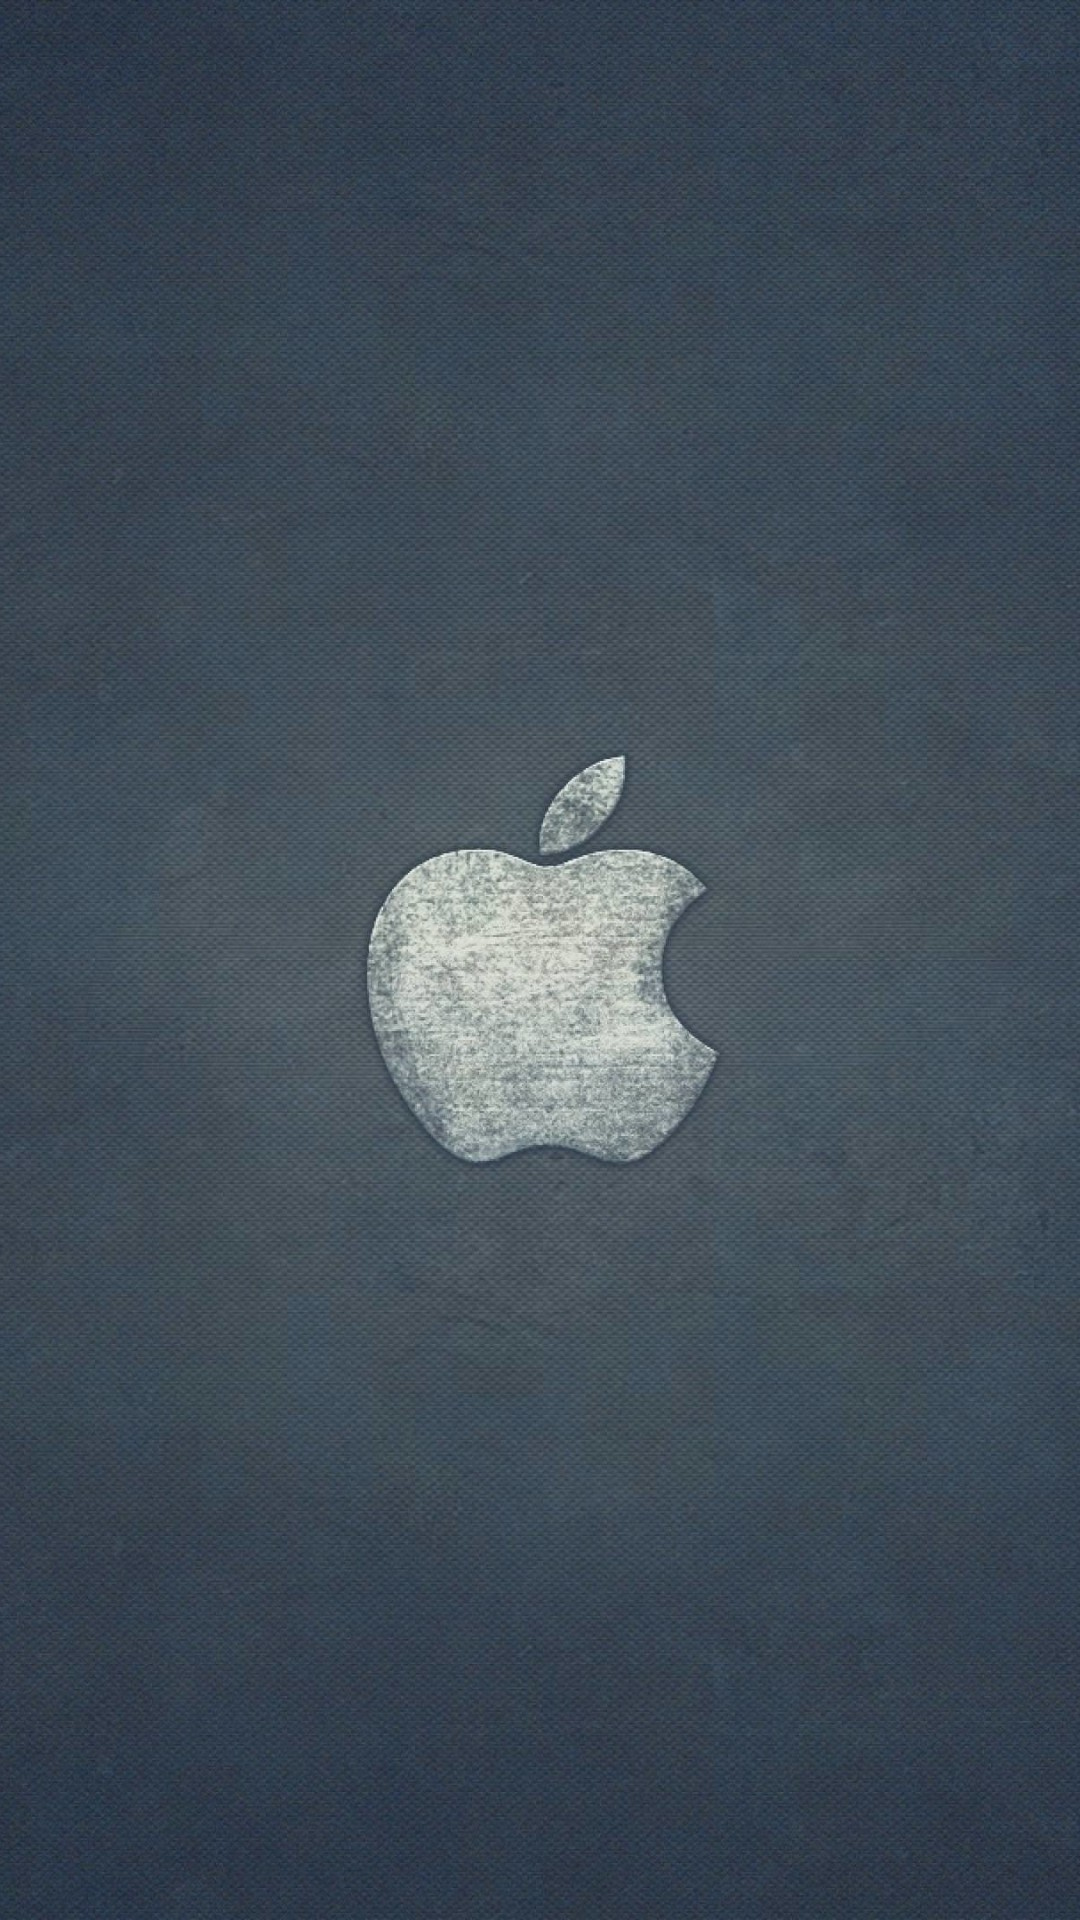 Grunge Apple Logo Wallpaper for SAMSUNG Galaxy Note 3